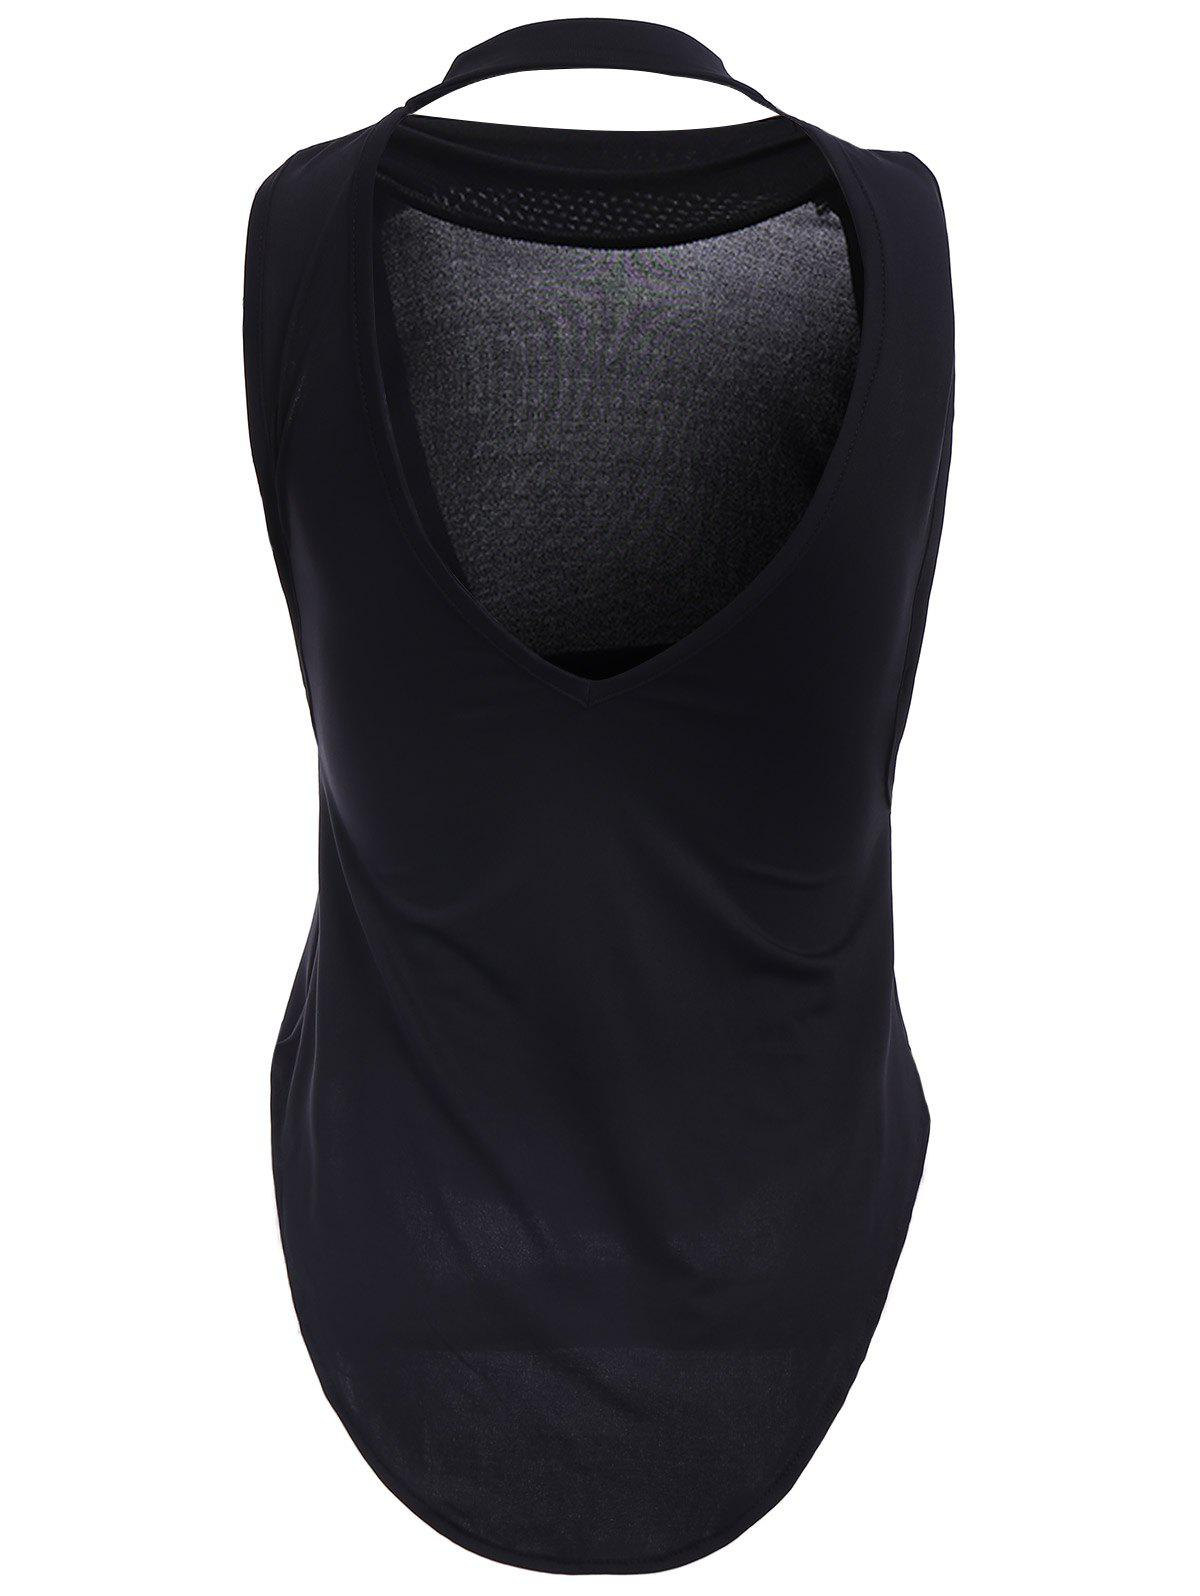 Sexy Women's Round Neck Solid Color Backless Tank Top - BLACK M